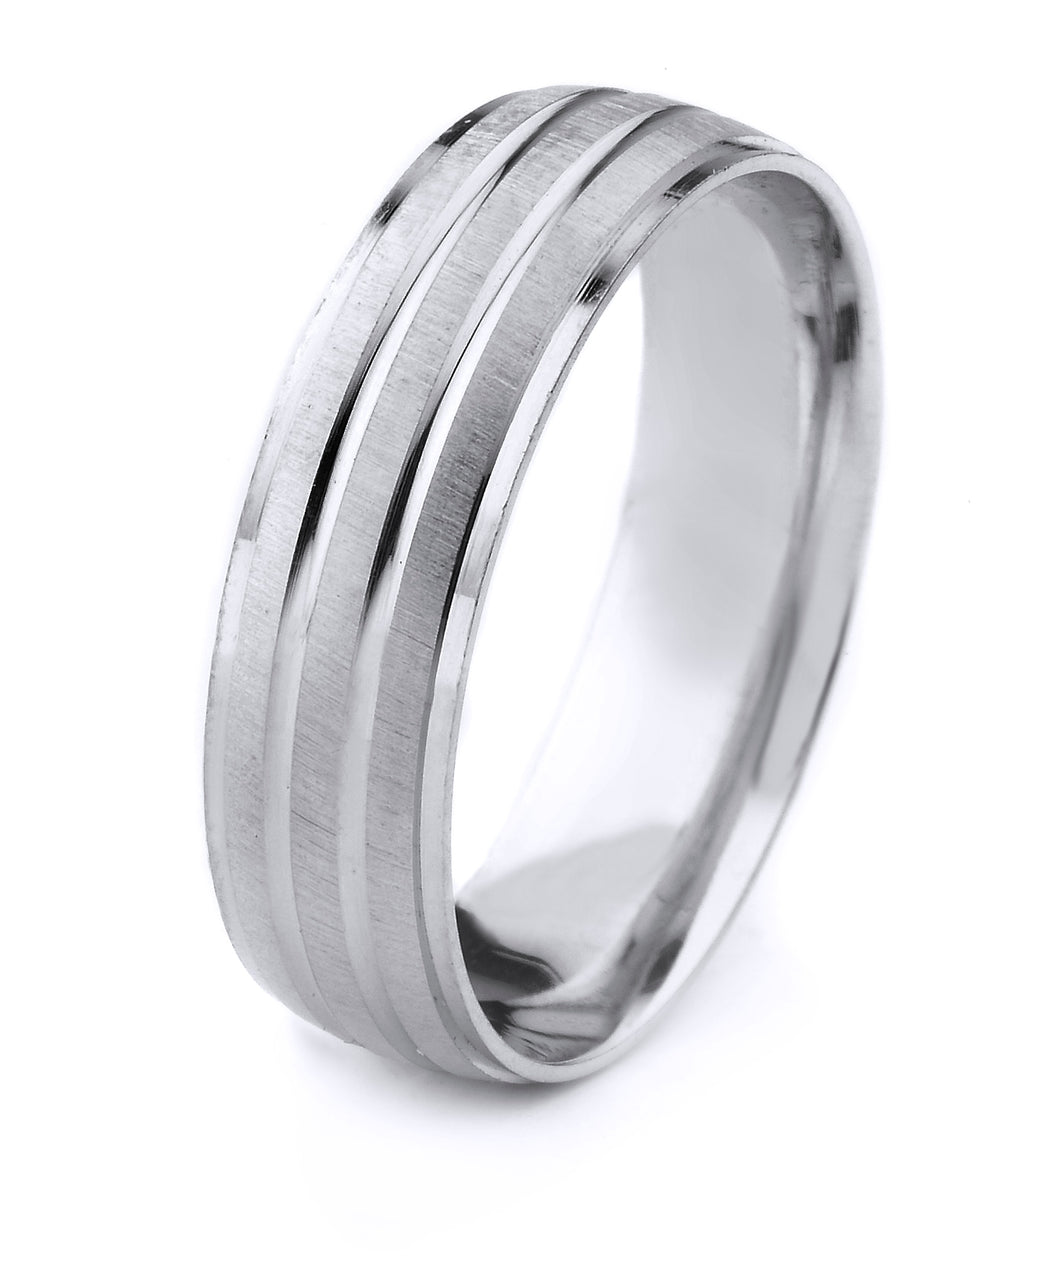 PLATINUM MEN'S WEDDING BAND WITH CROSS SATIN FINISH AND POLISHED GROOVES